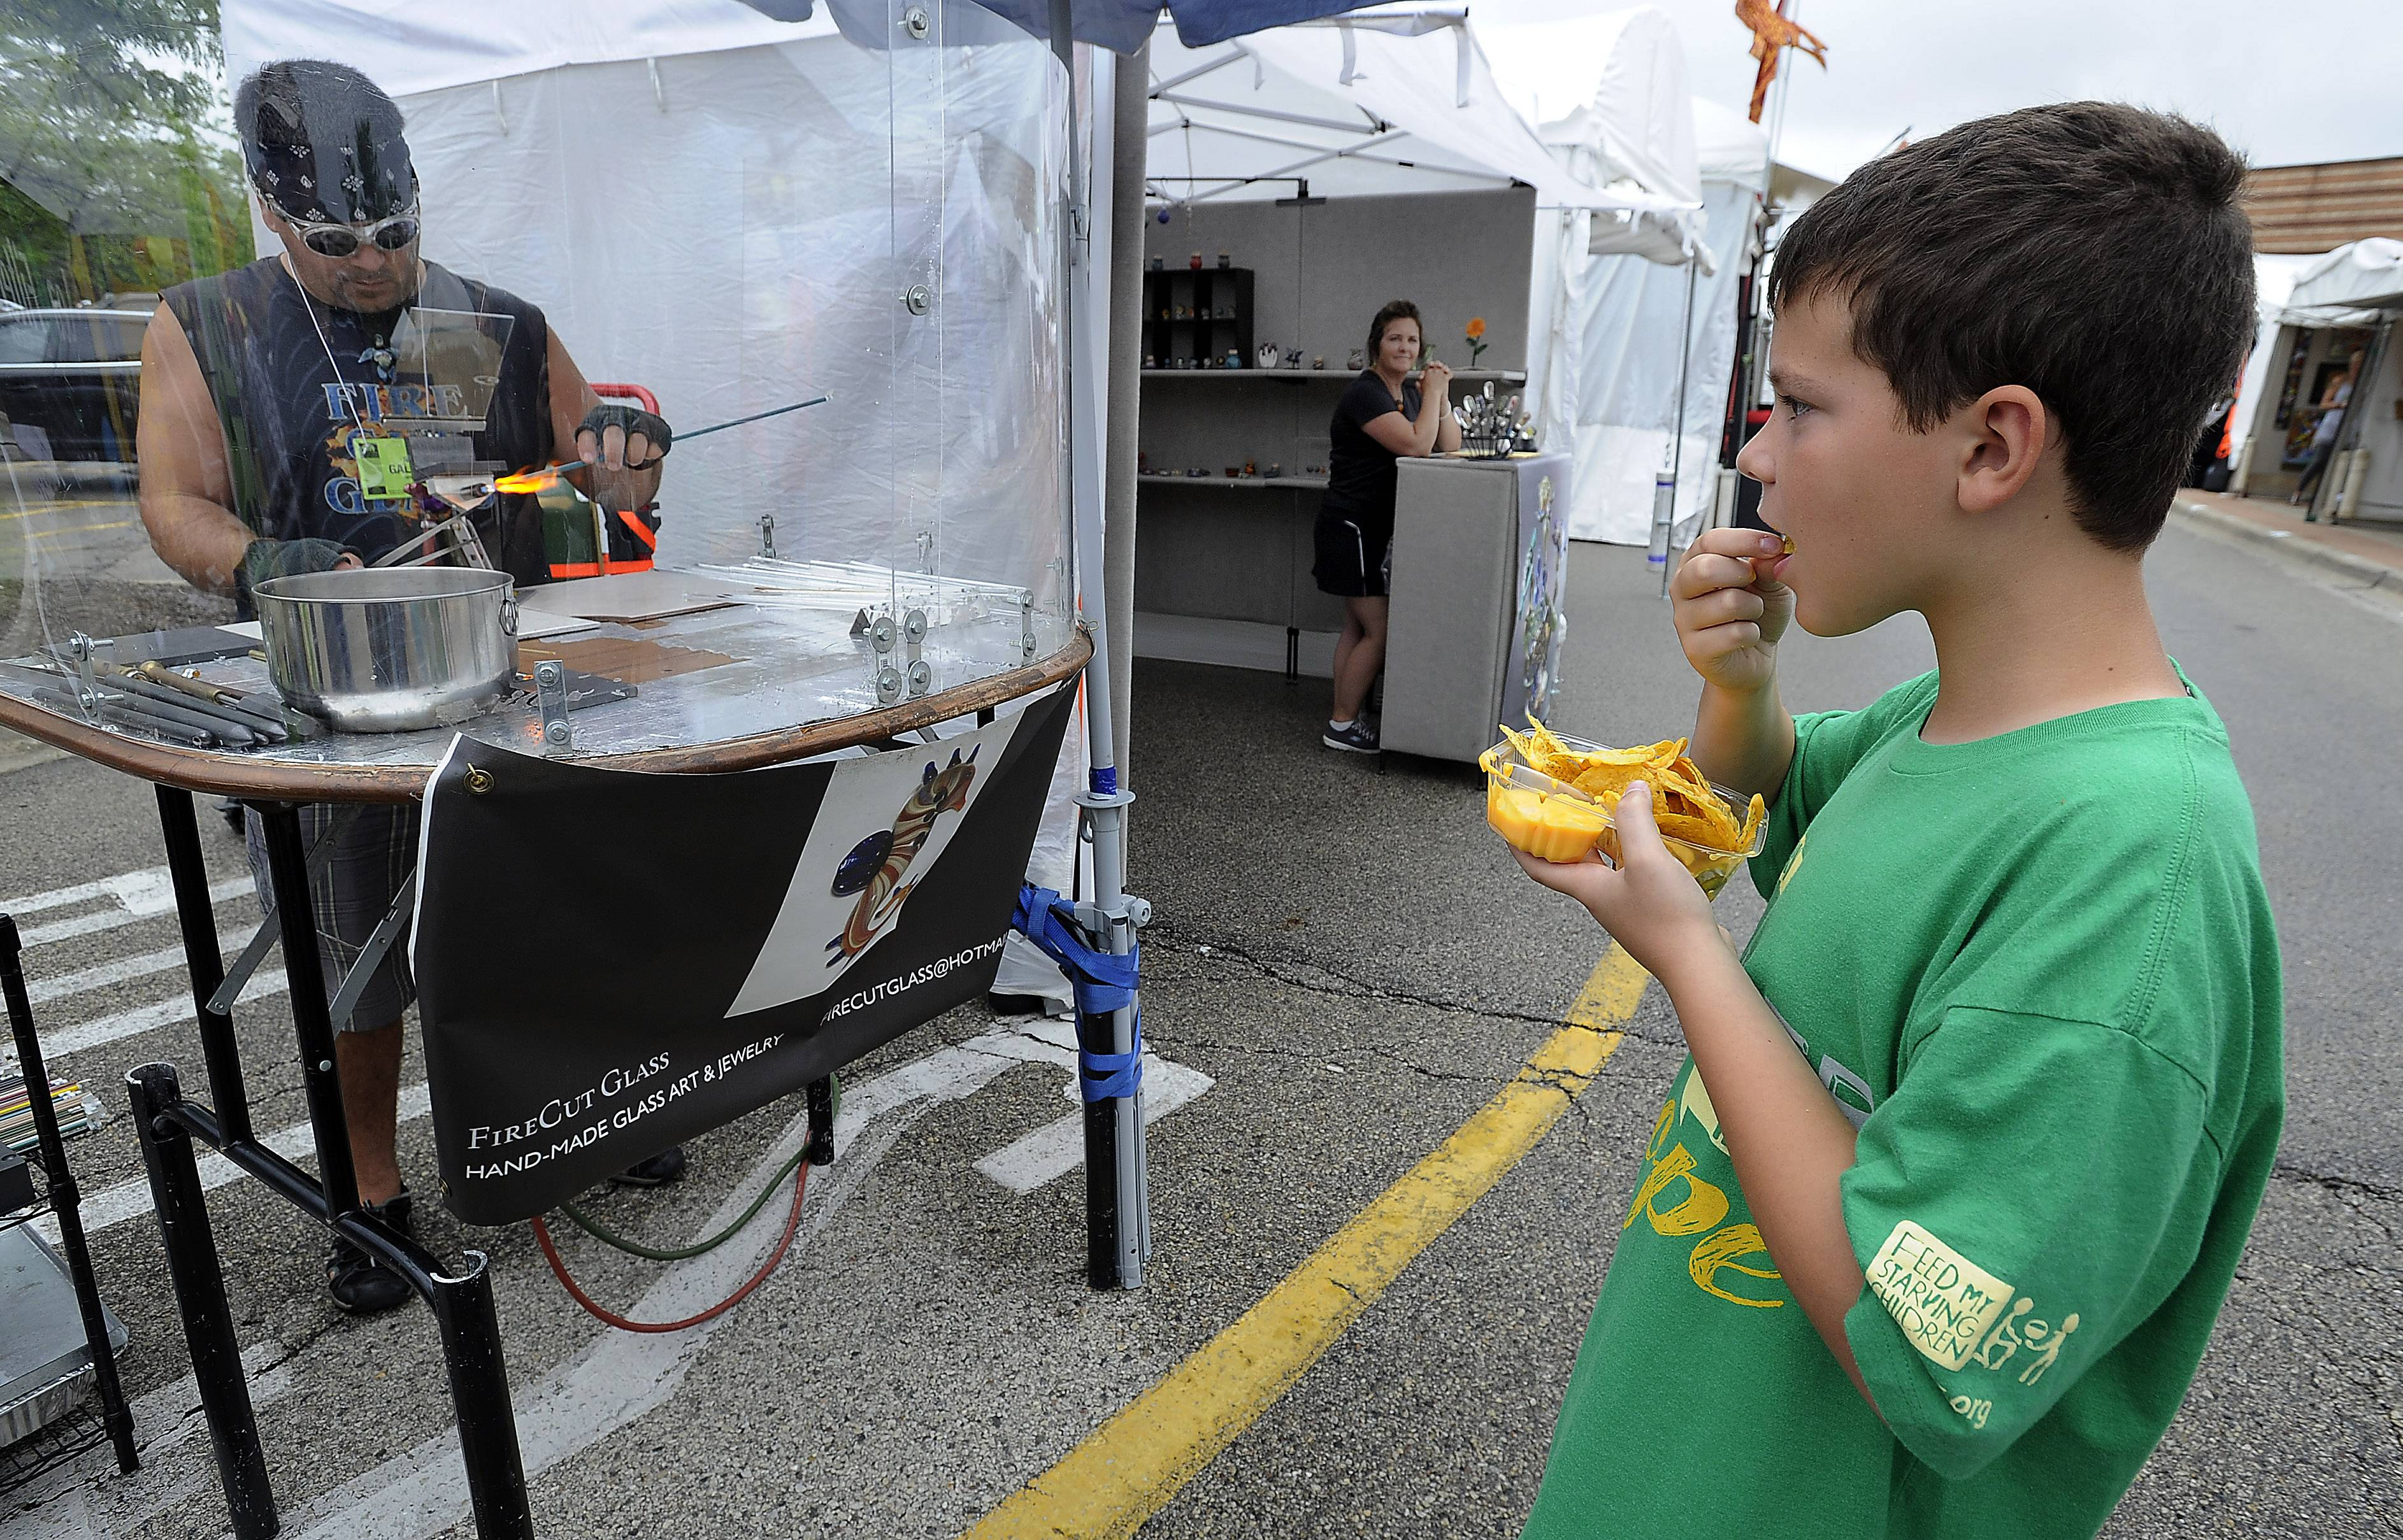 Matthew Scherer, 10, of Arlington Heights enjoys some nachos Saturday at the Buffalo Grove Arts Festival while watching Nick Galatte of Monee shape a piece of glass into a work of art.